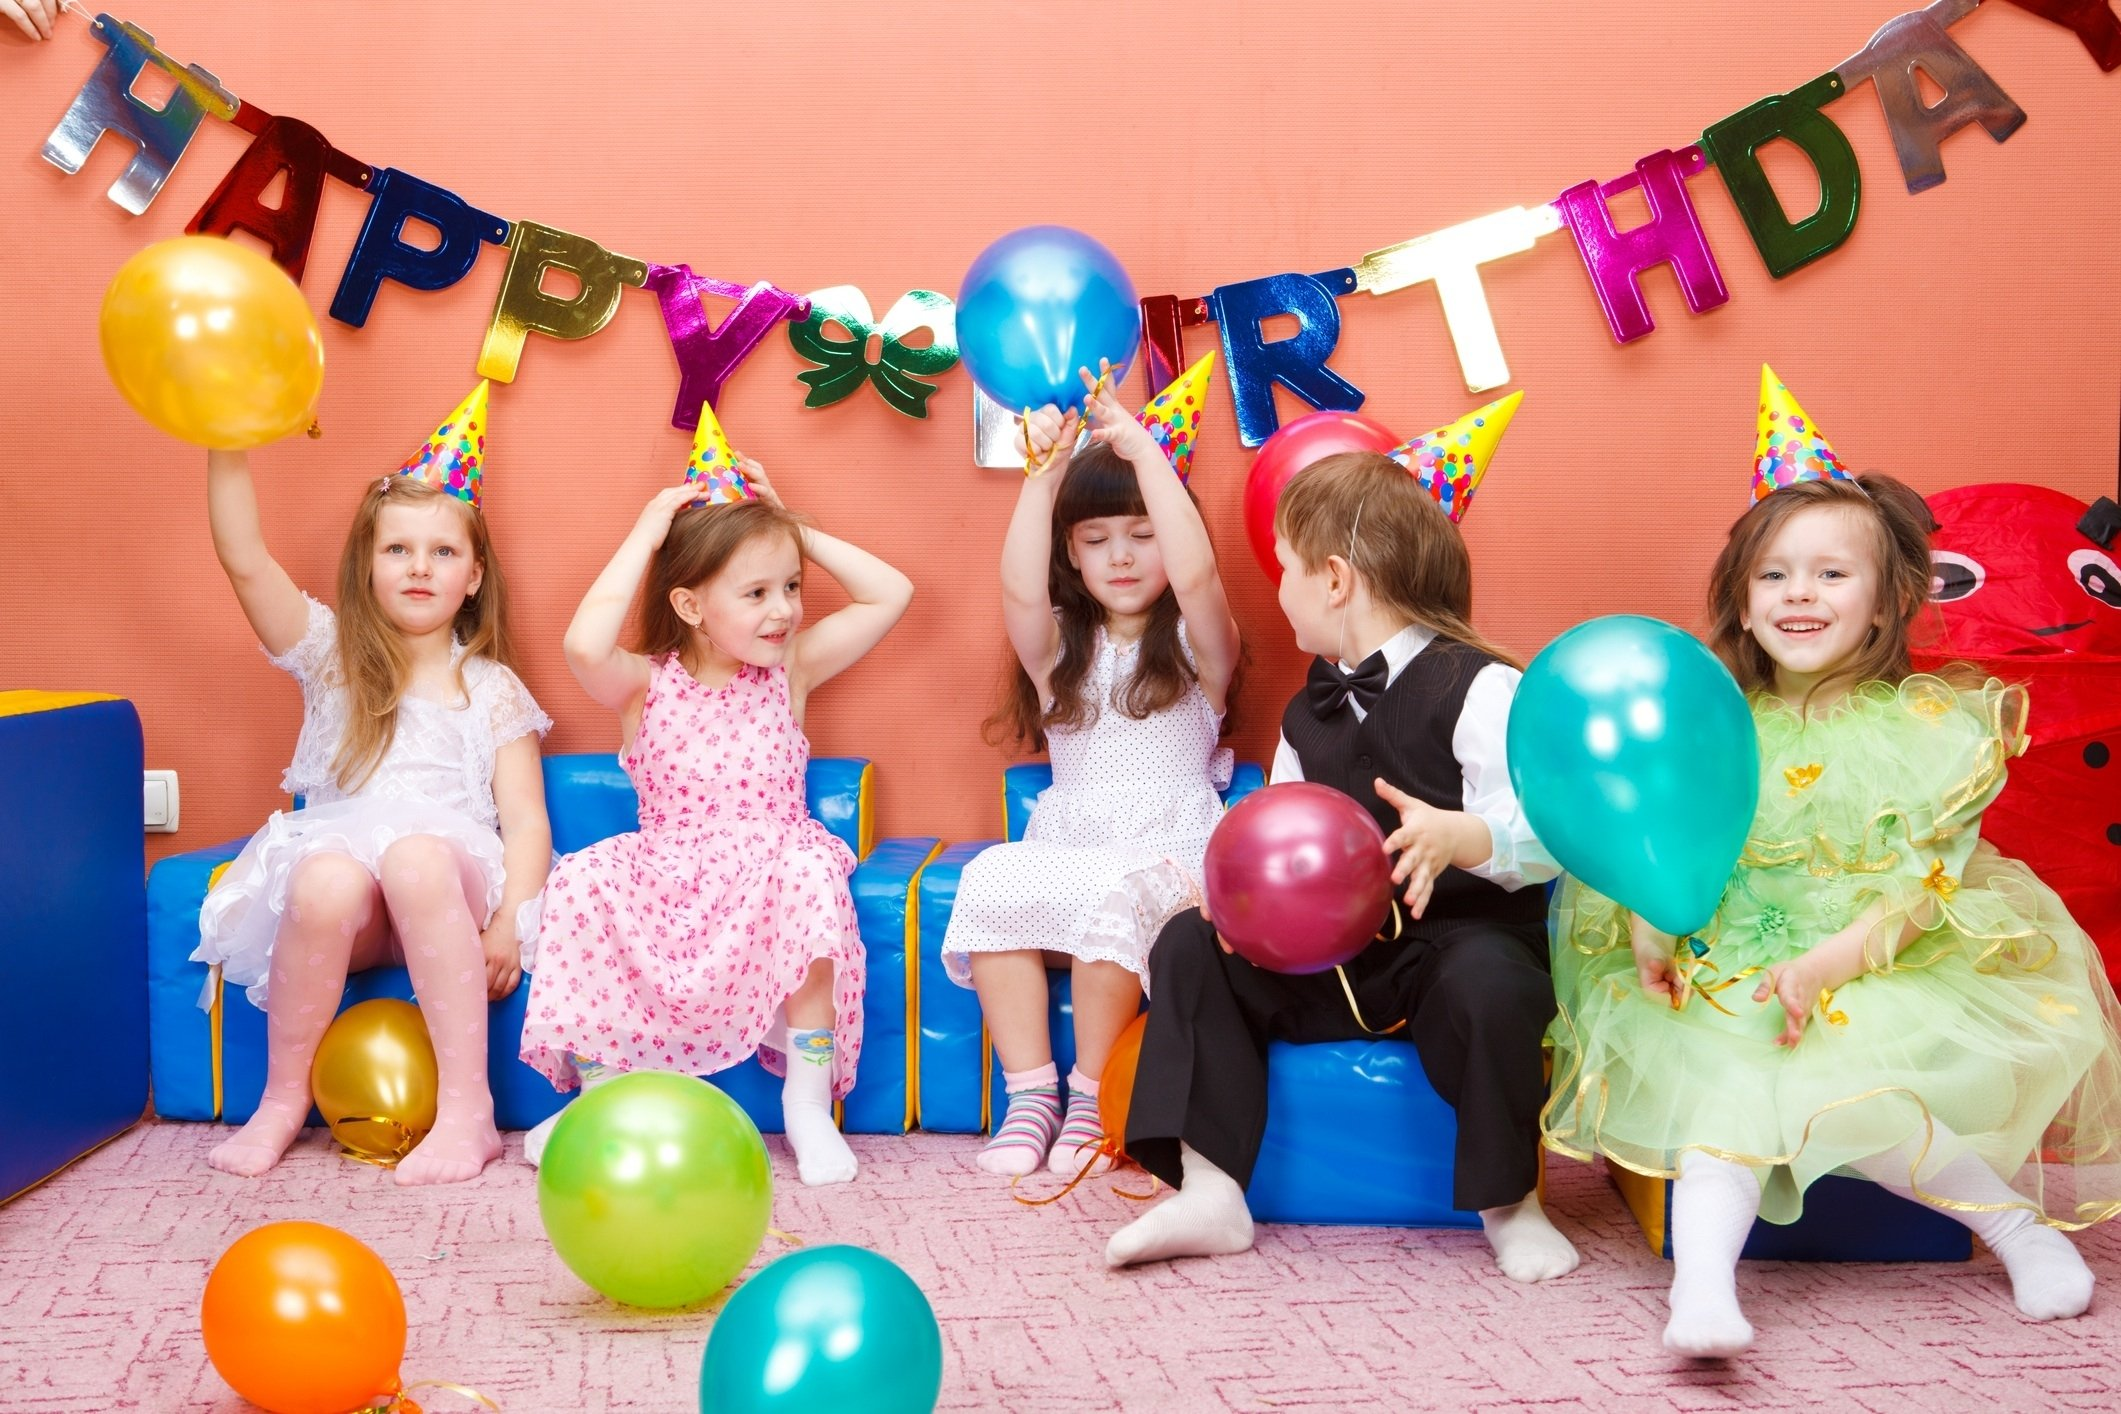 10 Fabulous Party Ideas For 11 Year Olds 45 awesome 11 12 year old birthday party ideas birthday inspire 15 2020